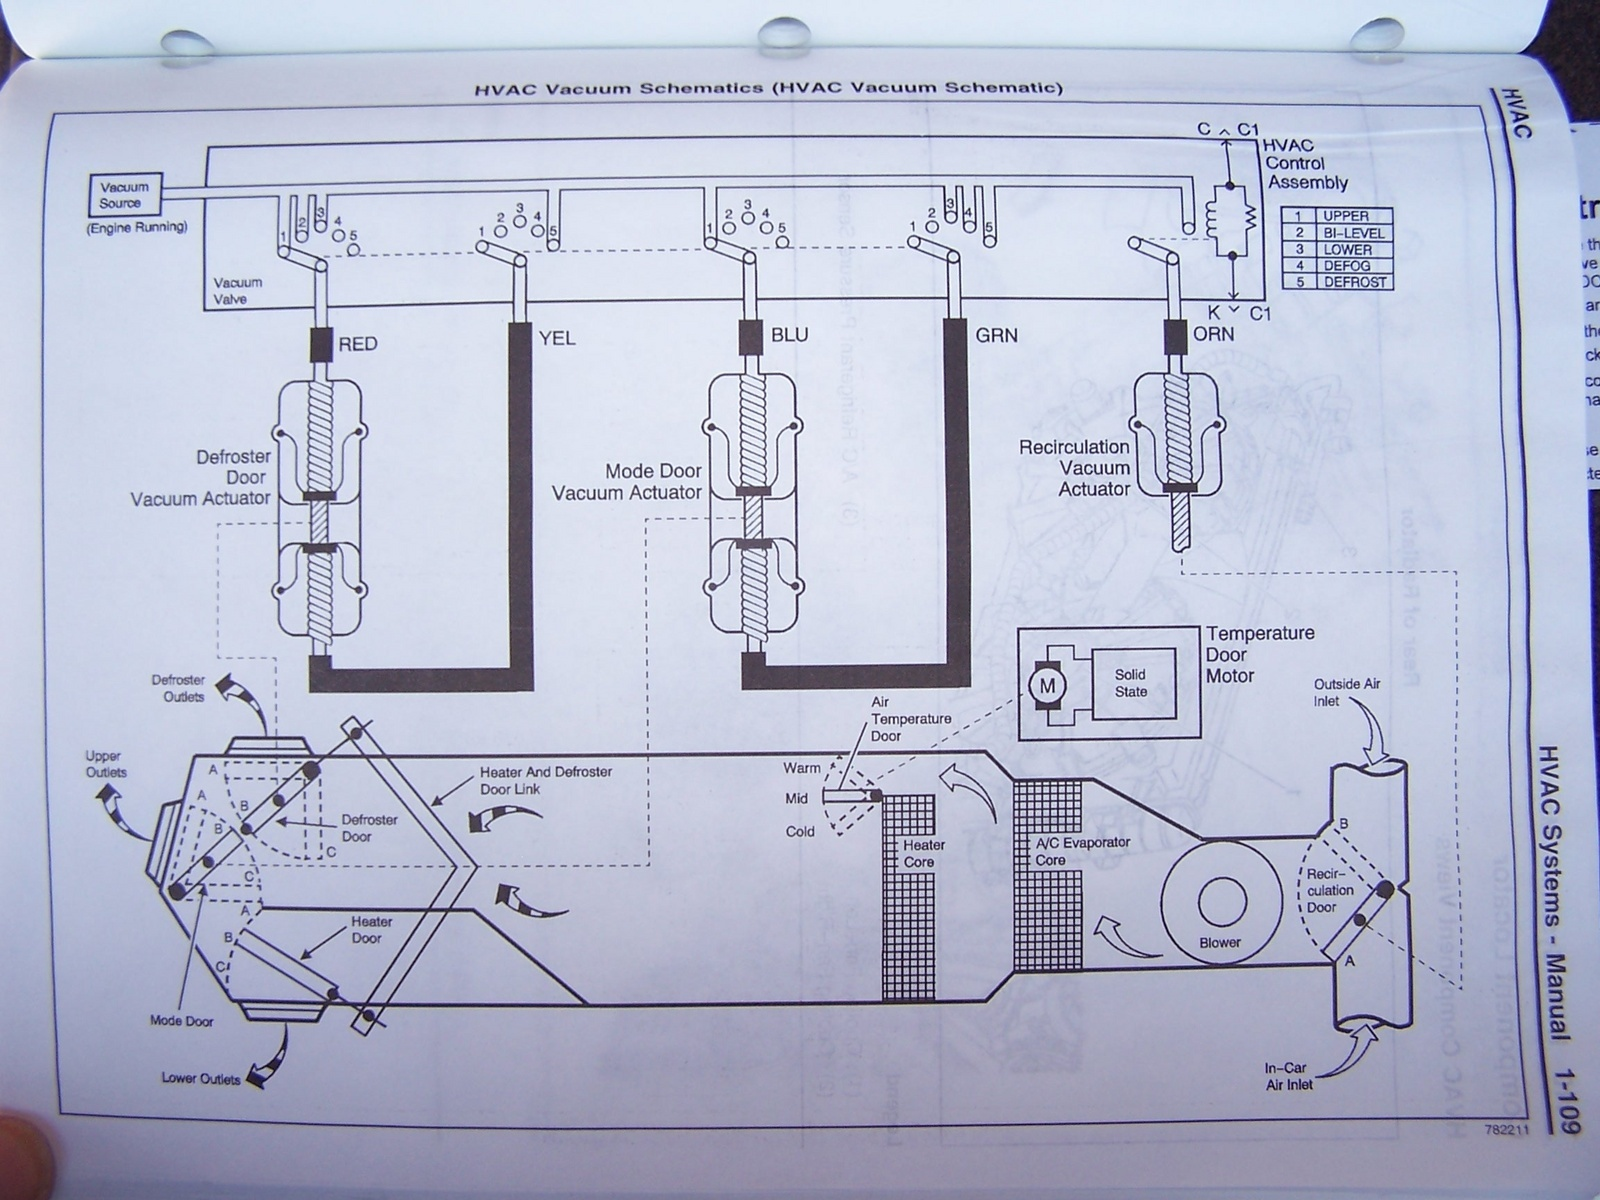 99 Gmc Van Wiring Diagram Door Library Highlander Oxygen Sensor Heater Control Circuit Low Bank 1 4 Answers